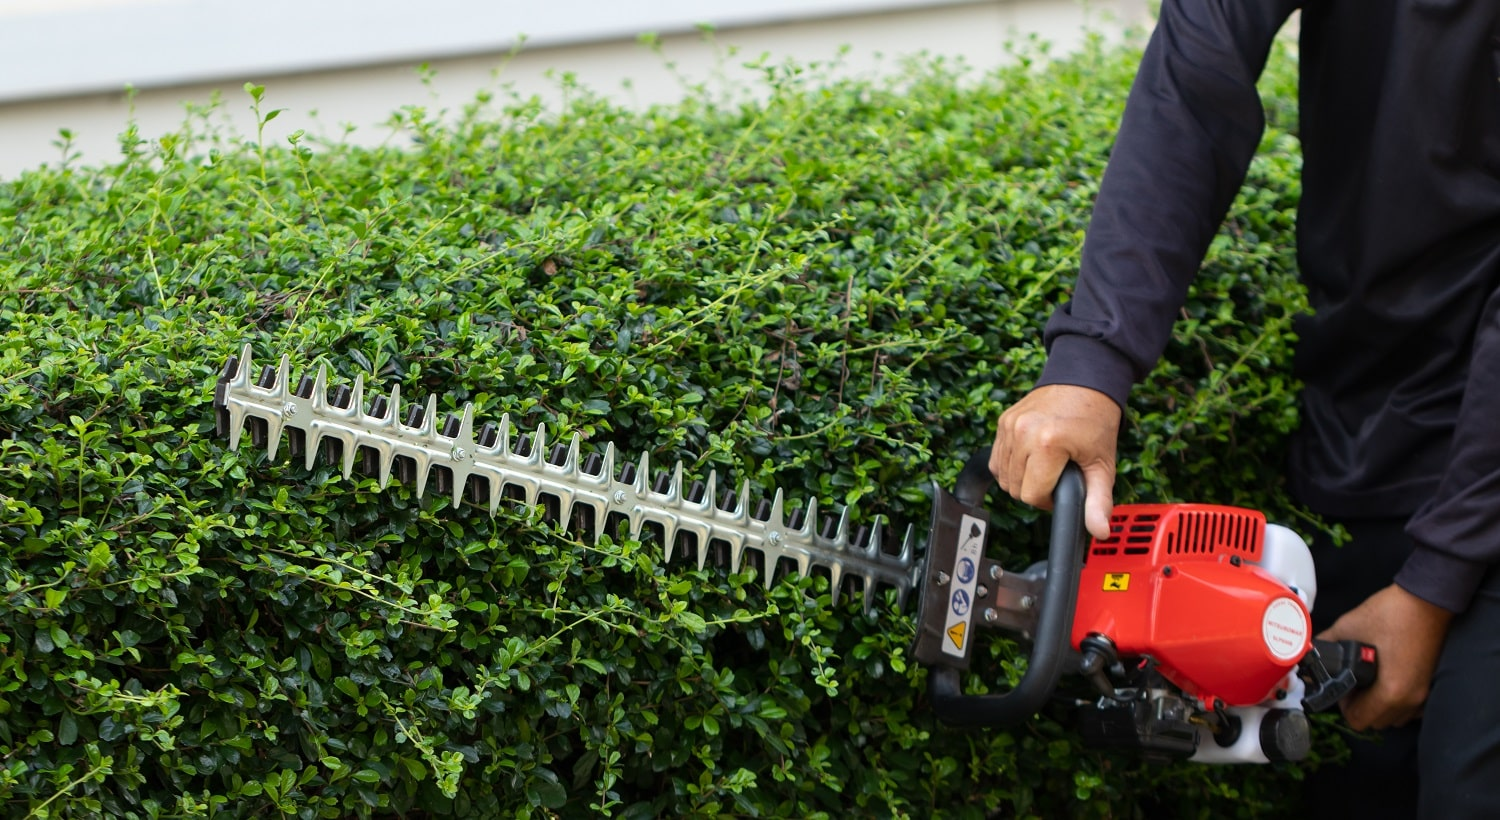 Home and garden concept. Hedge trimmer in action. Bush trimming work. Shrubs pruning. Gardening and cutting activities.